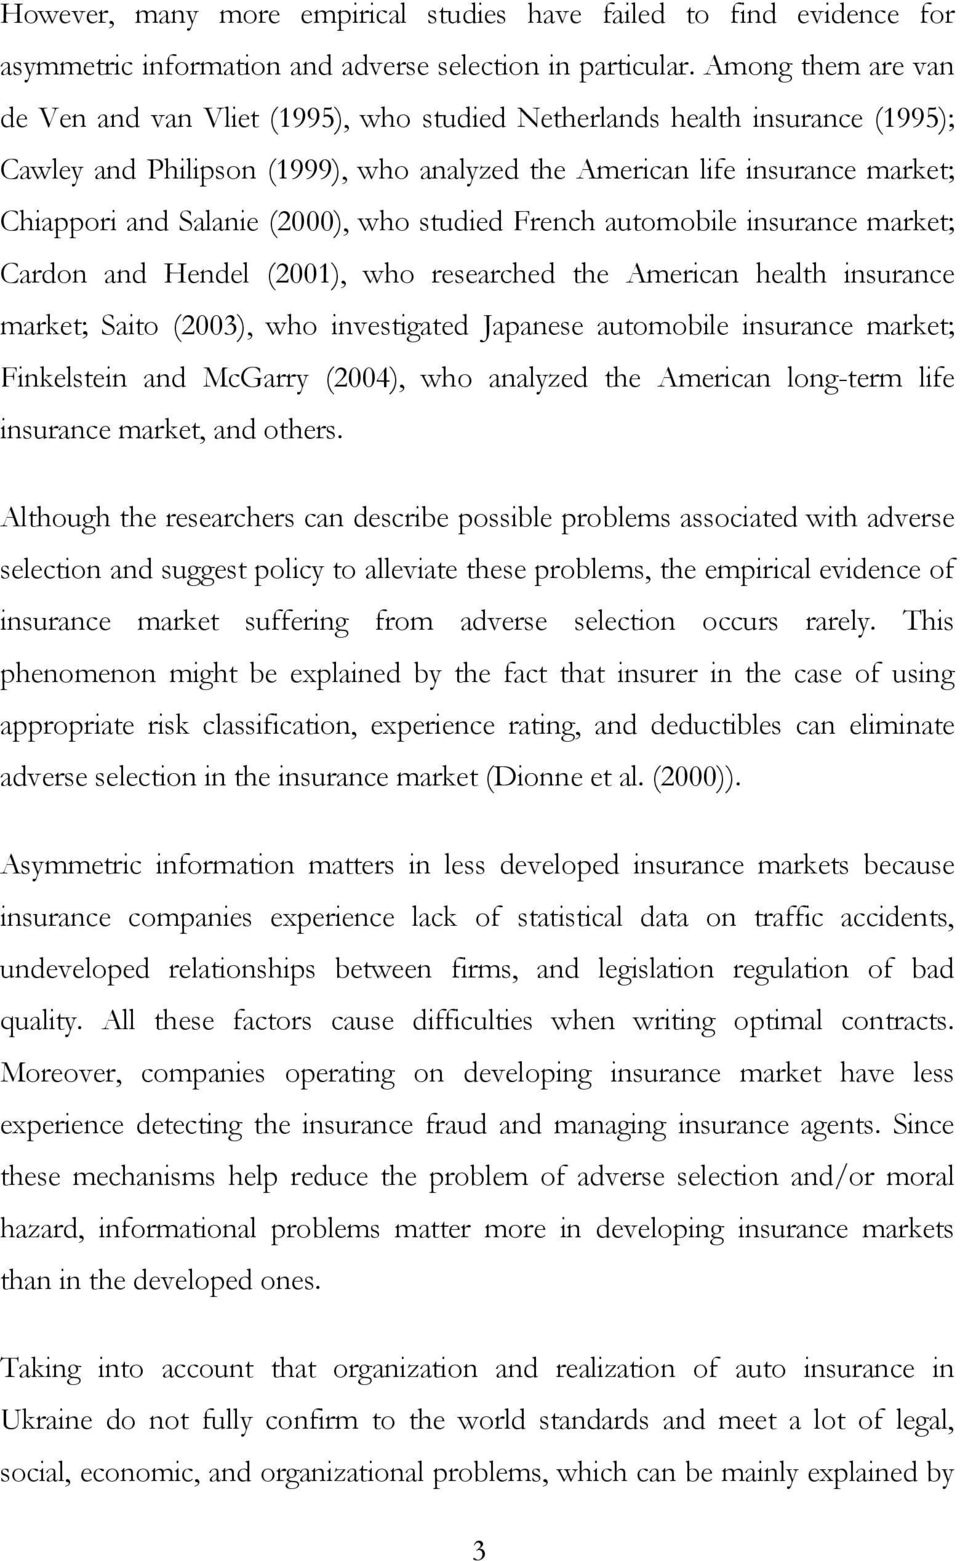 studed French automoble nsurance market; Cardon and Hendel (2001), who researched the Amercan health nsurance market; Sato (2003), who nvestgated Japanese automoble nsurance market; Fnkelsten and